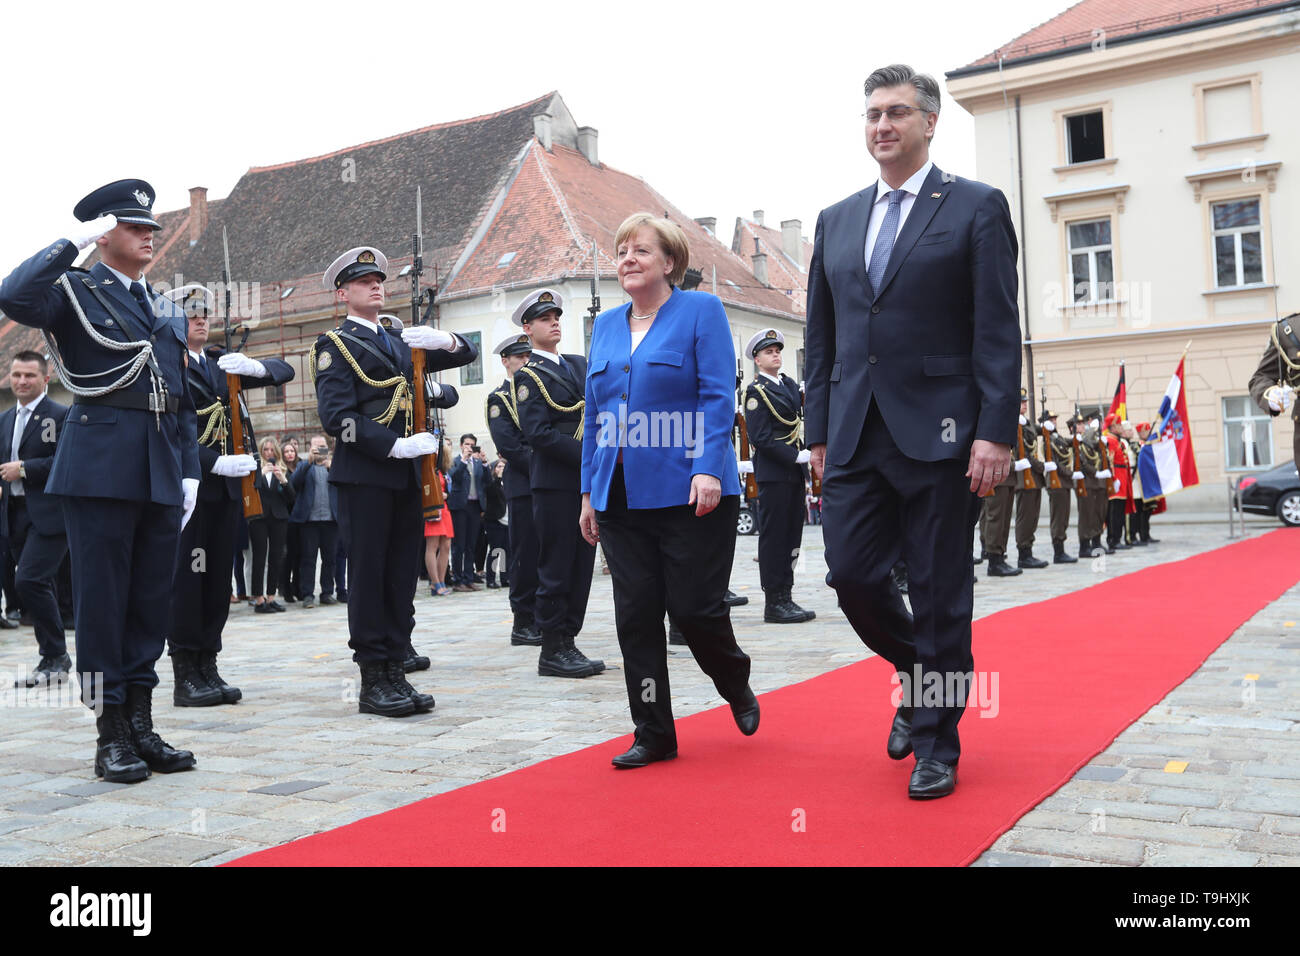 Zagreb, Croatia. 18th May, 2019. Croatian Prime Minister Andrej Plenkovic (R) and visiting German Chancellor Angela Merkel inspect the guard of honor in Zagreb, Croatia, May 18, 2019. Croatia is on the right path to entry into the Schengen area and has the support of Germany, German Chancellor Angela Merkel said here on Saturday after a formal part of the talks with Croatian Prime Minister Andrej Plenkovic. Credit: Robert Anic/Xinhua/Alamy Live News - Stock Image